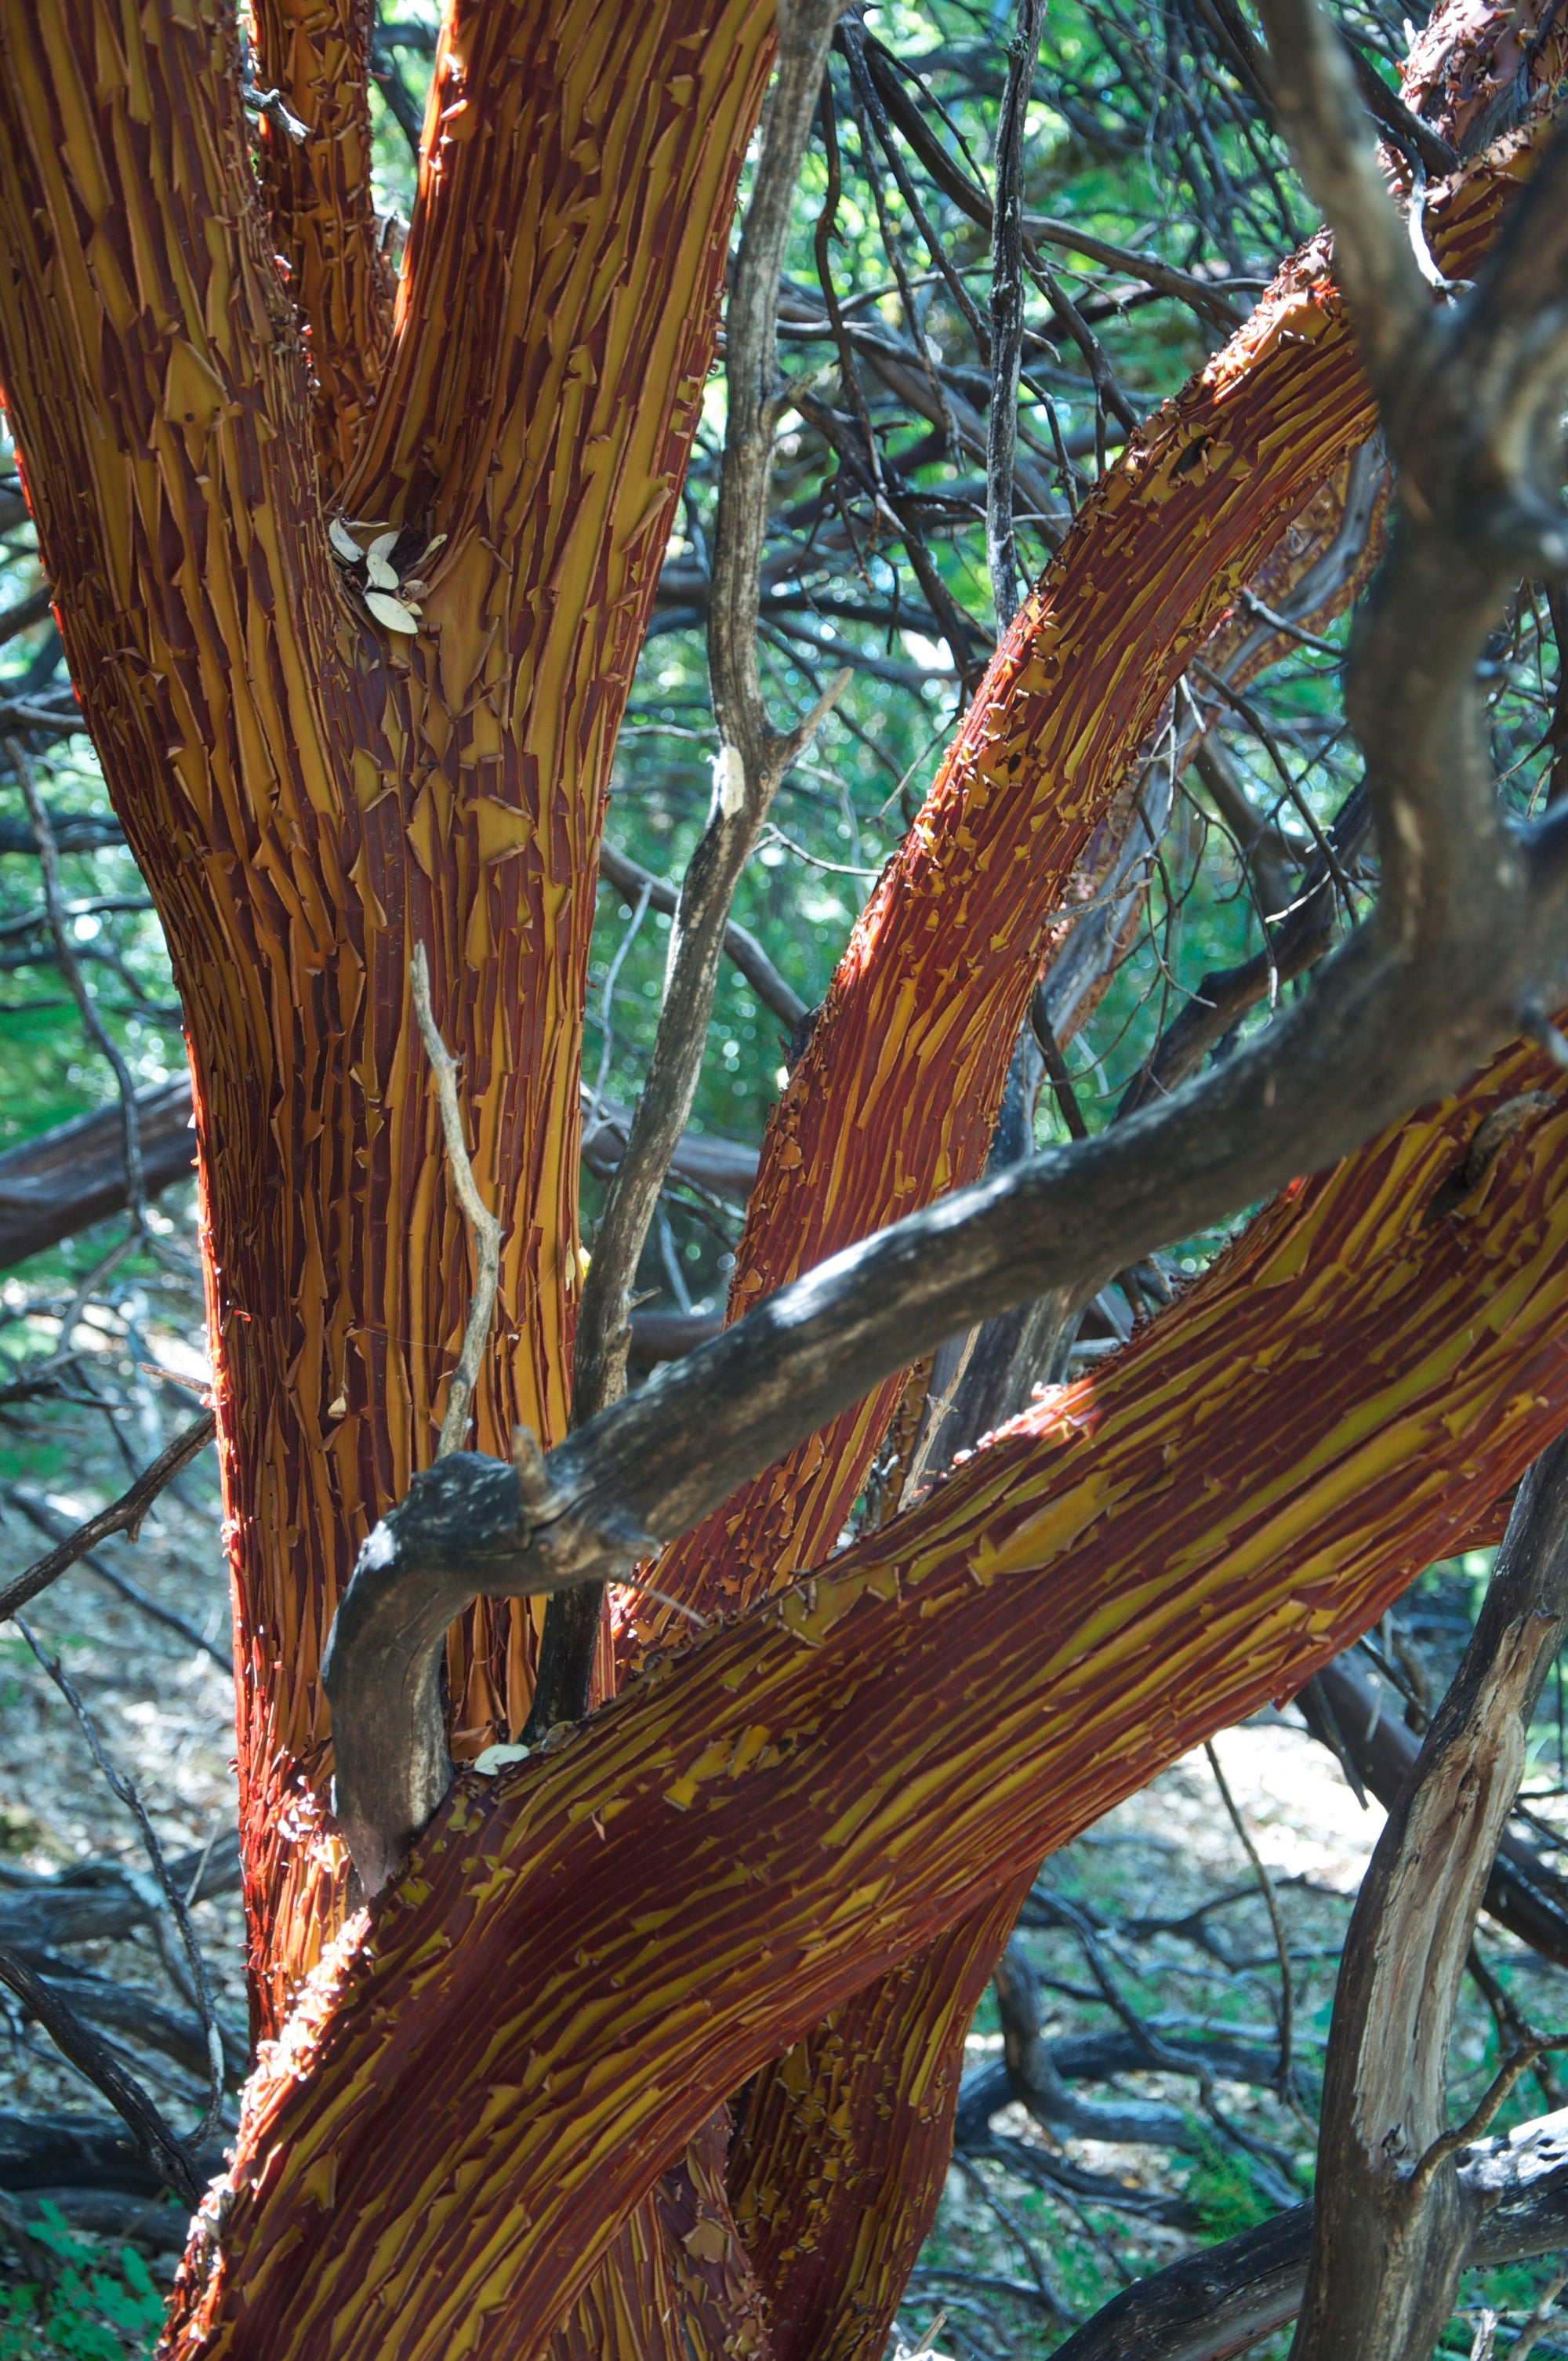 <I>Manzanita Tree Shedding Bark in Summer</I><br>Mendocino, California, 2011<br><br>GC0125